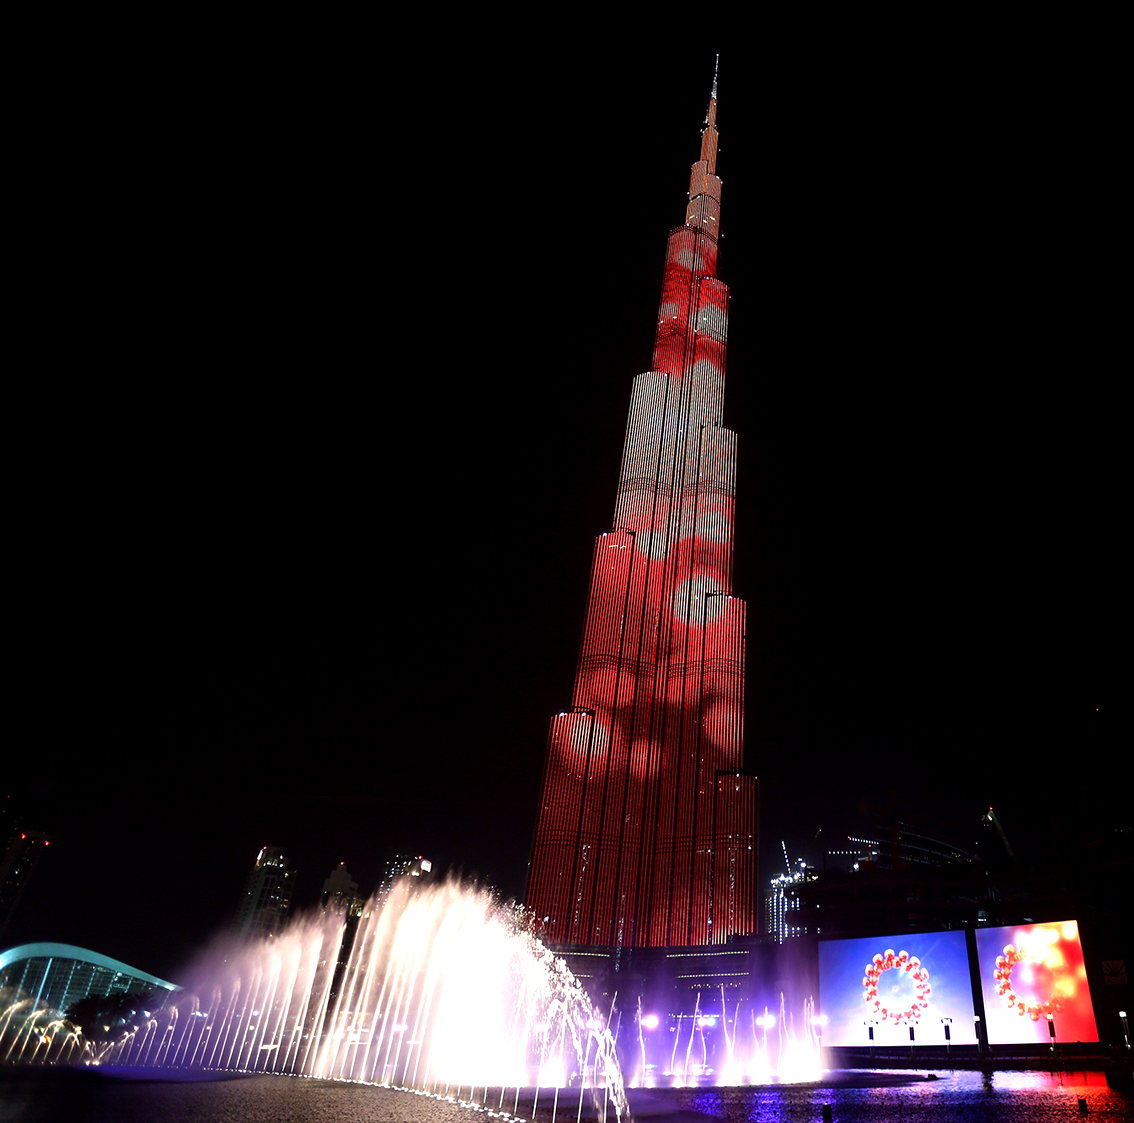 images/stories/dubai/DubaiExpo2020b.jpg